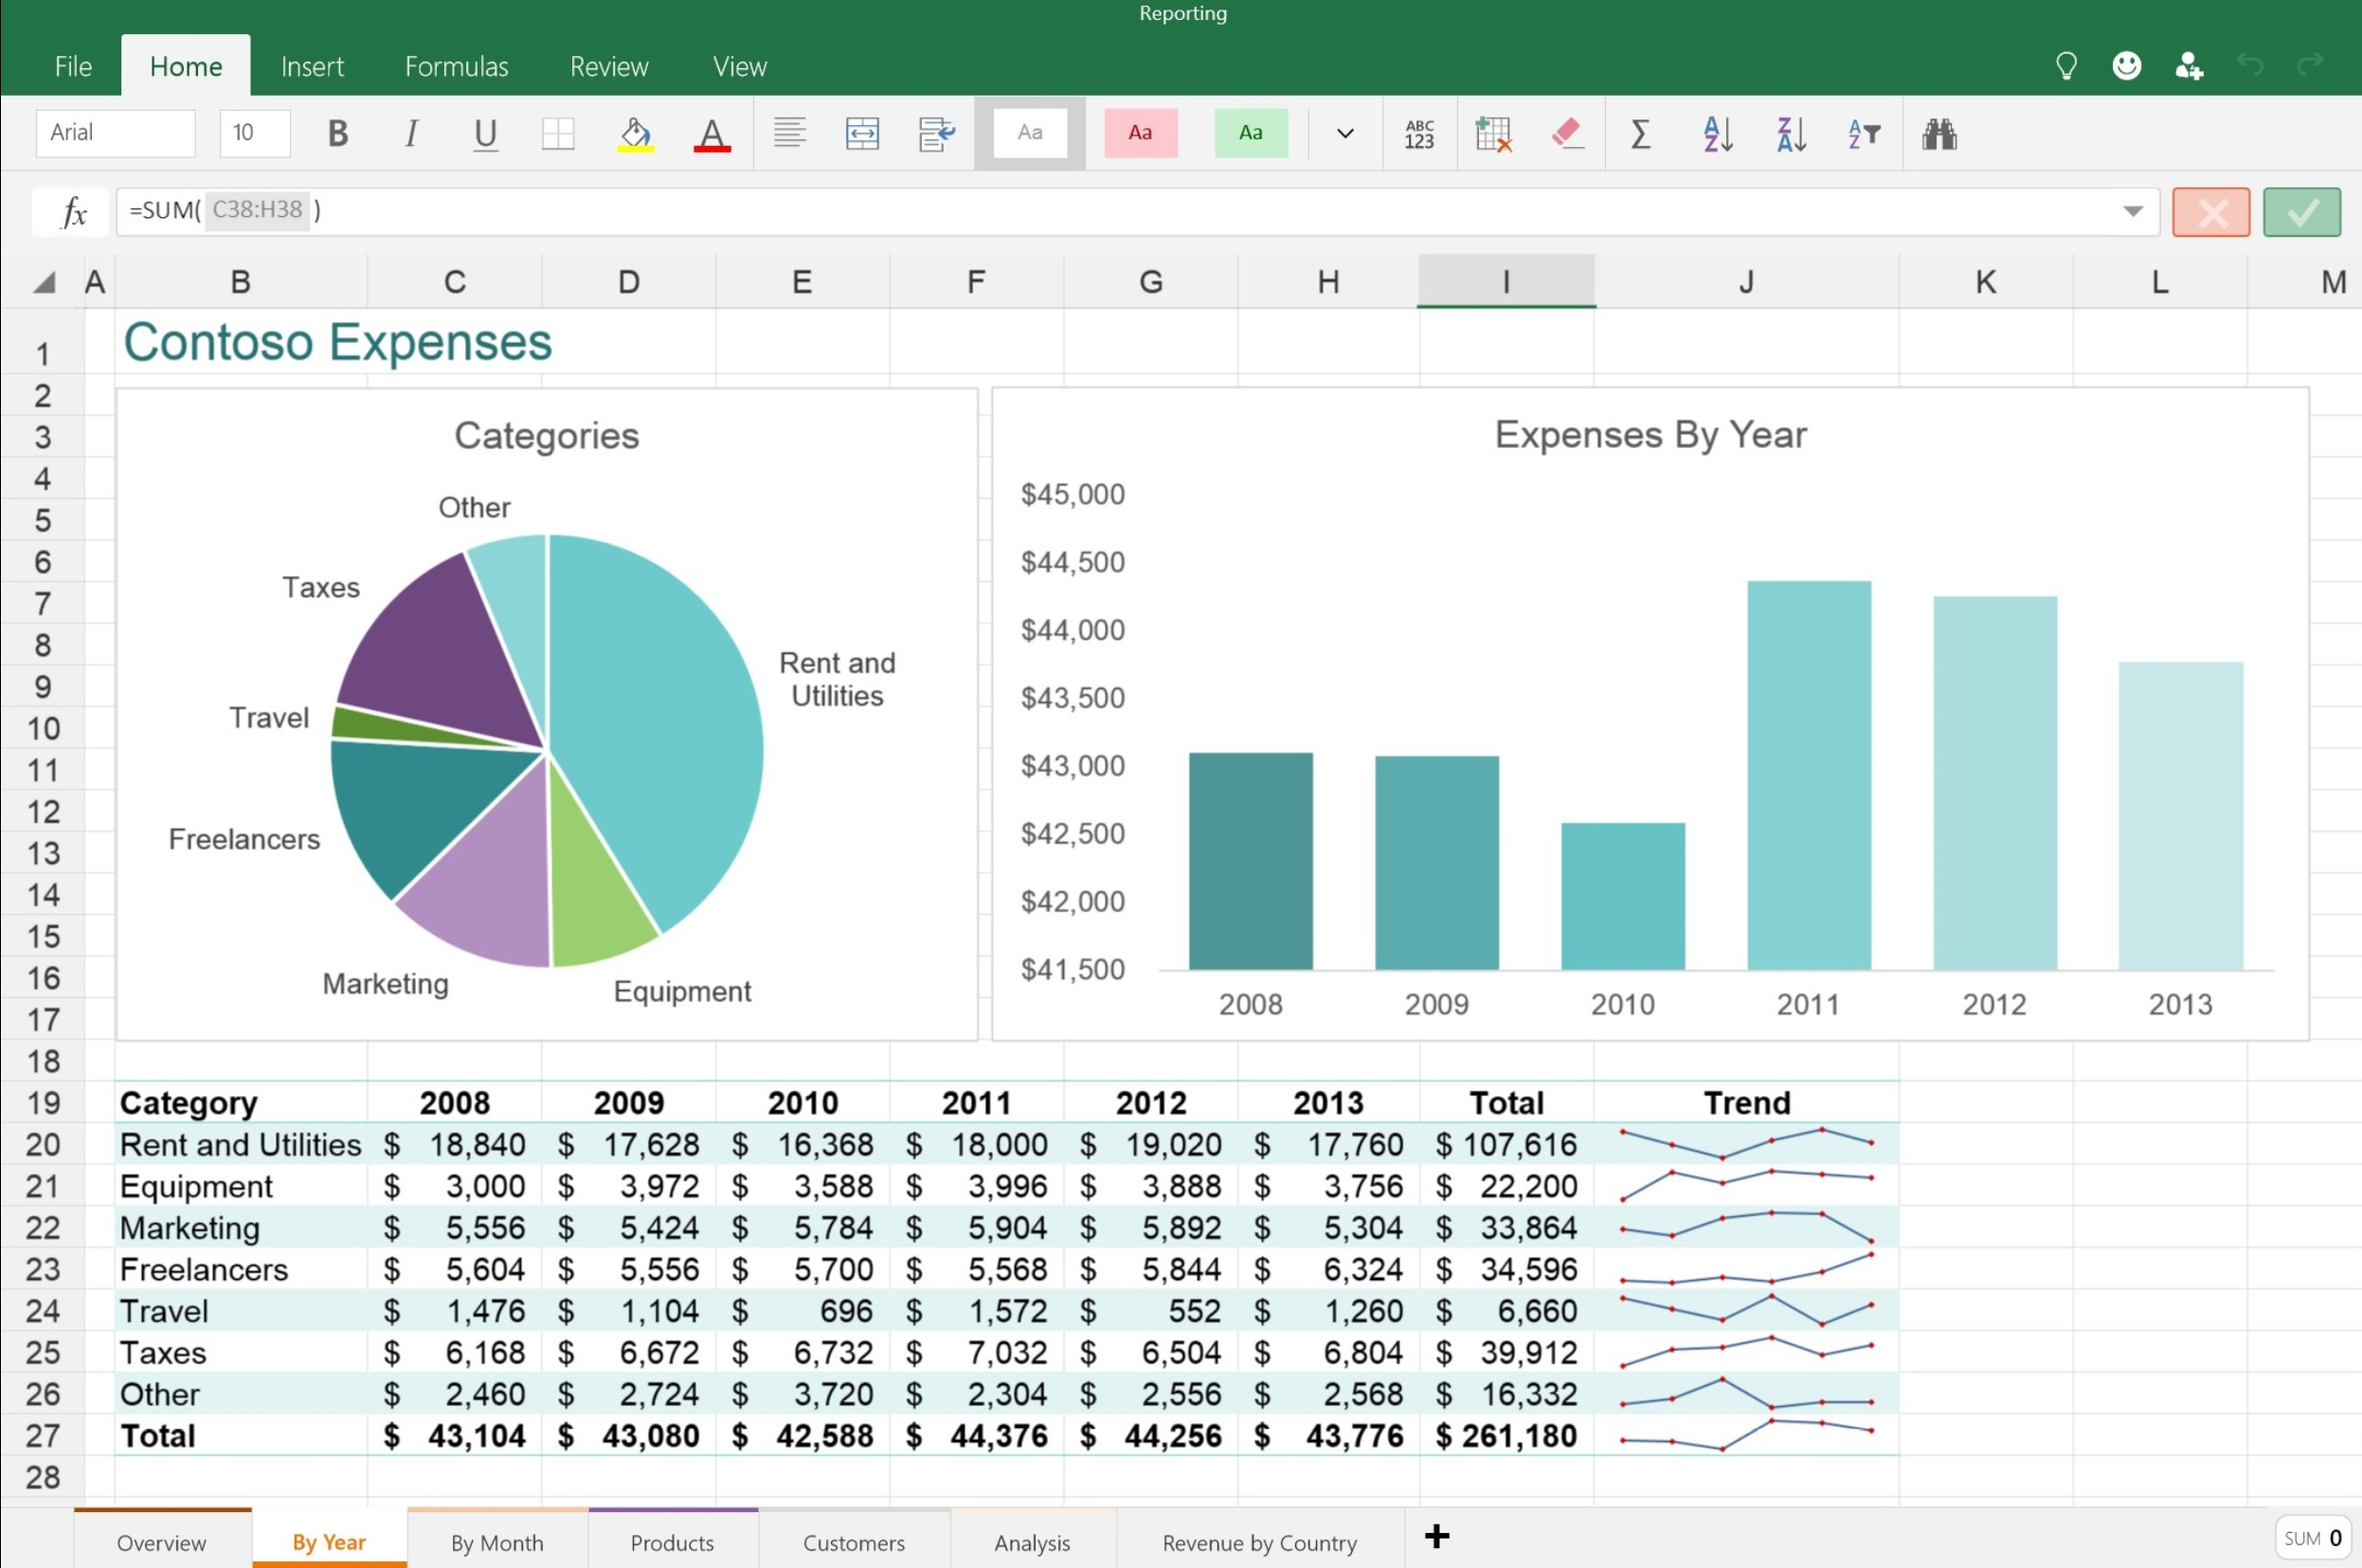 Ediblewildsus  Unique Features Available In The New Word Excel And Powerpoint Apps For  With Hot Excel Touch App  With Beauteous Create Pivot Chart Excel  Also Form Controls In Excel In Addition Excel Inventory Tracker And Ms Excel Offset As Well As Devexpress Export To Excel Additionally Excel Accounting Software From Mspowerusercom With Ediblewildsus  Hot Features Available In The New Word Excel And Powerpoint Apps For  With Beauteous Excel Touch App  And Unique Create Pivot Chart Excel  Also Form Controls In Excel In Addition Excel Inventory Tracker From Mspowerusercom